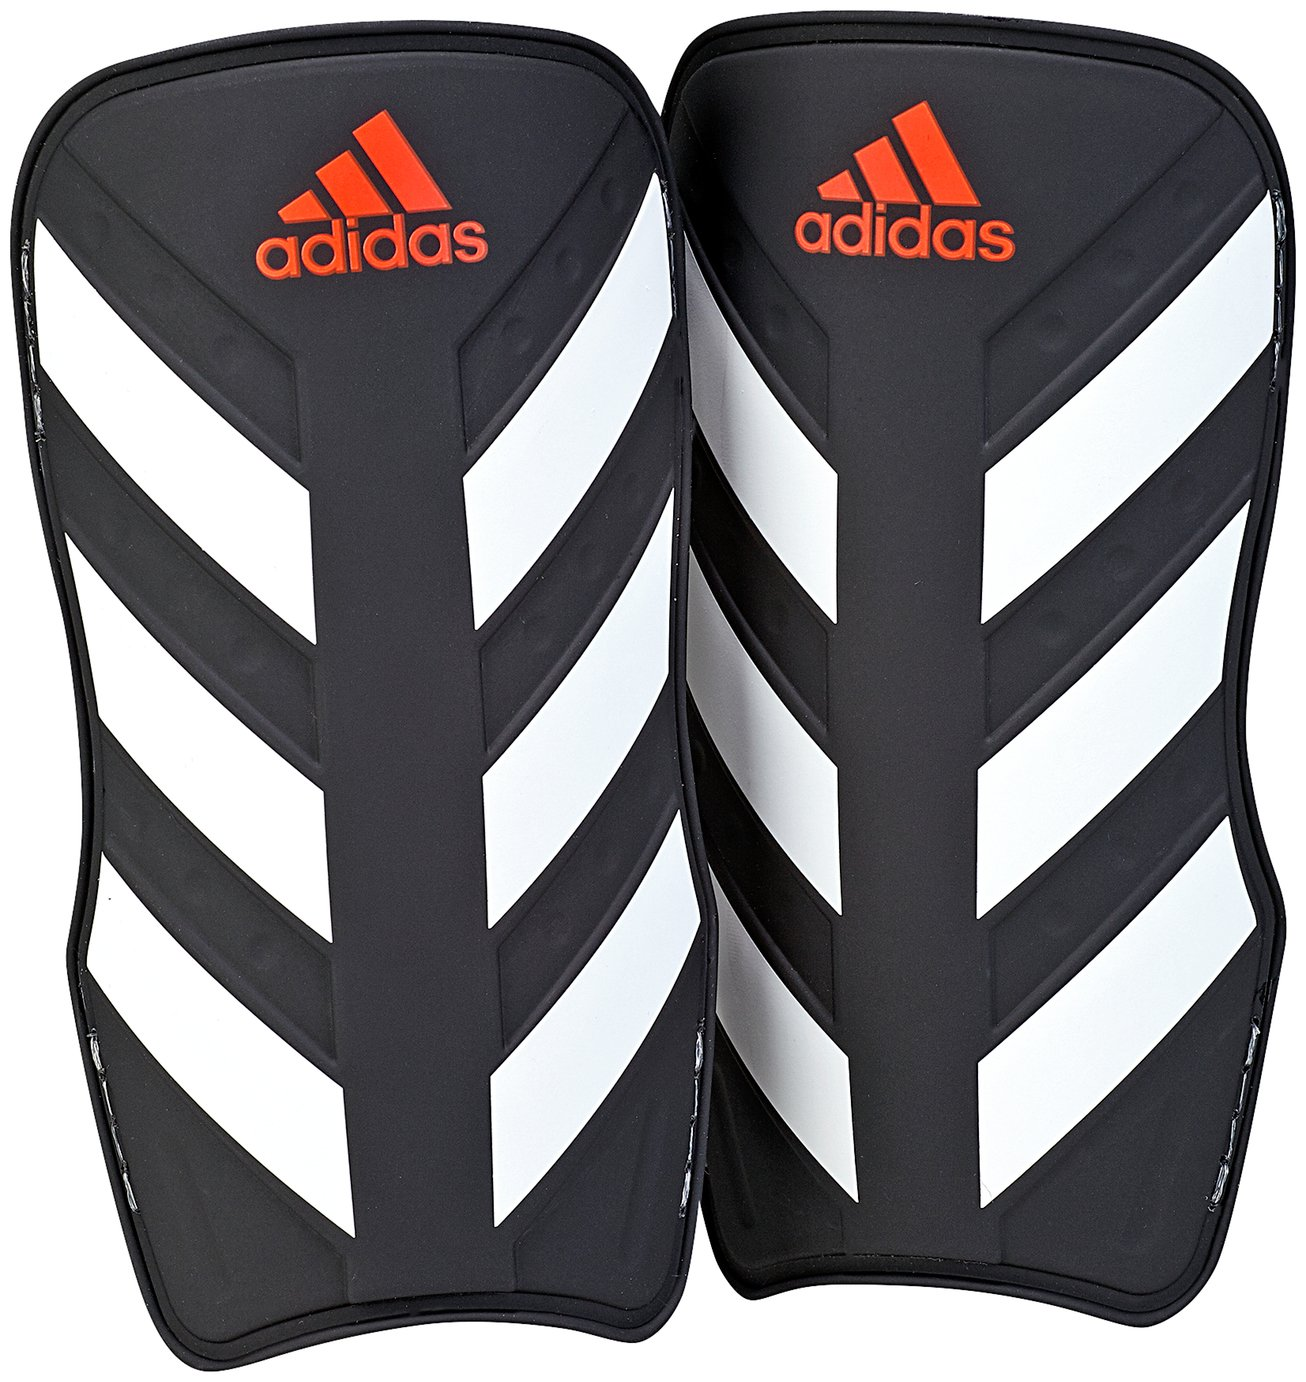 Adidas Everlite Slip In Football Shin Pads from Adidas